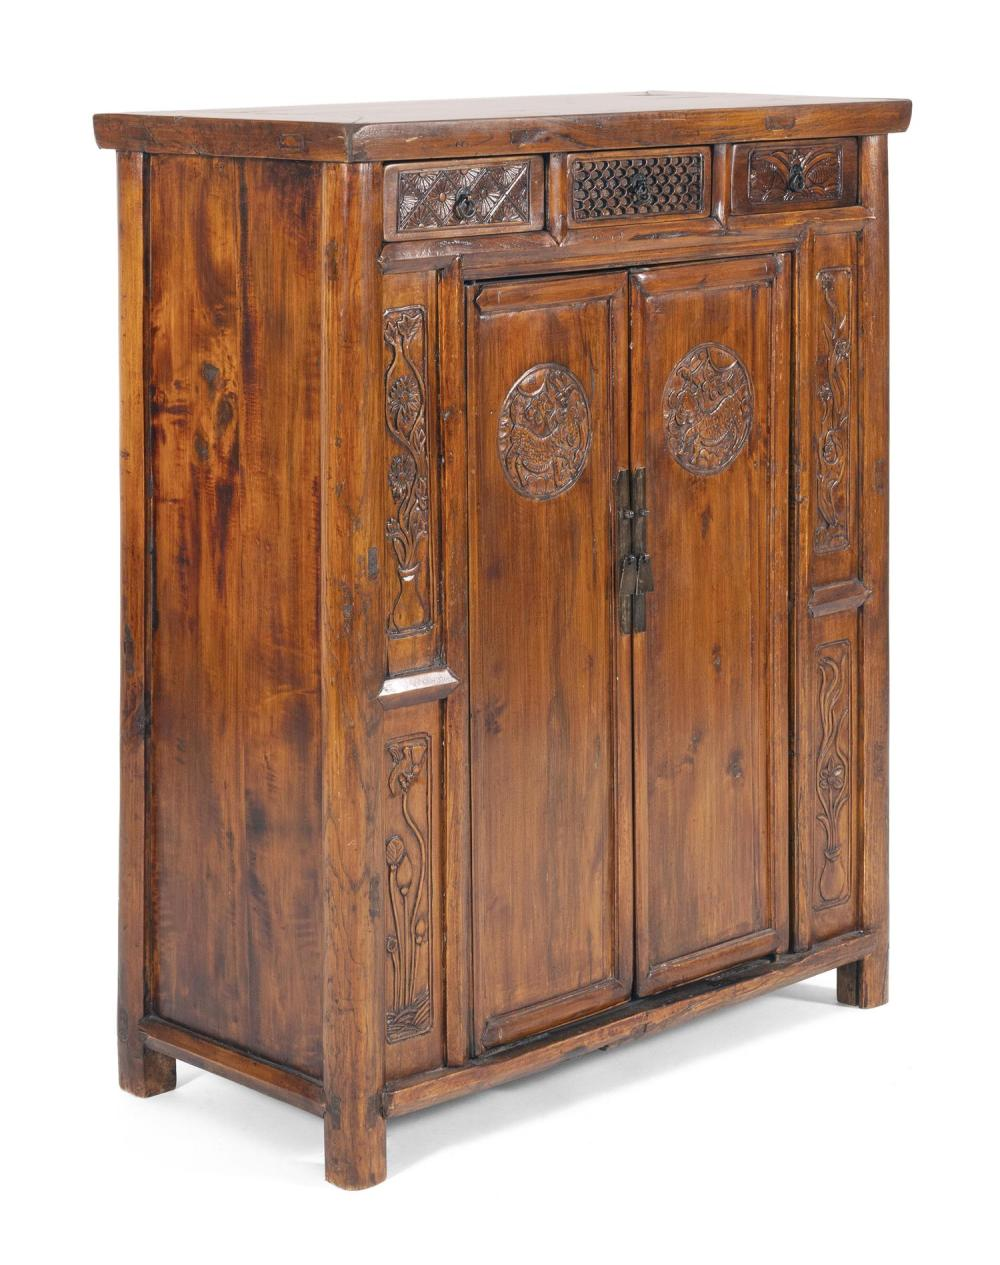 CHINESE ROSEWOOD CUPBOARD With three carved drawers over a two-door cabinet that opens to reveal two interior shelves separated by t...